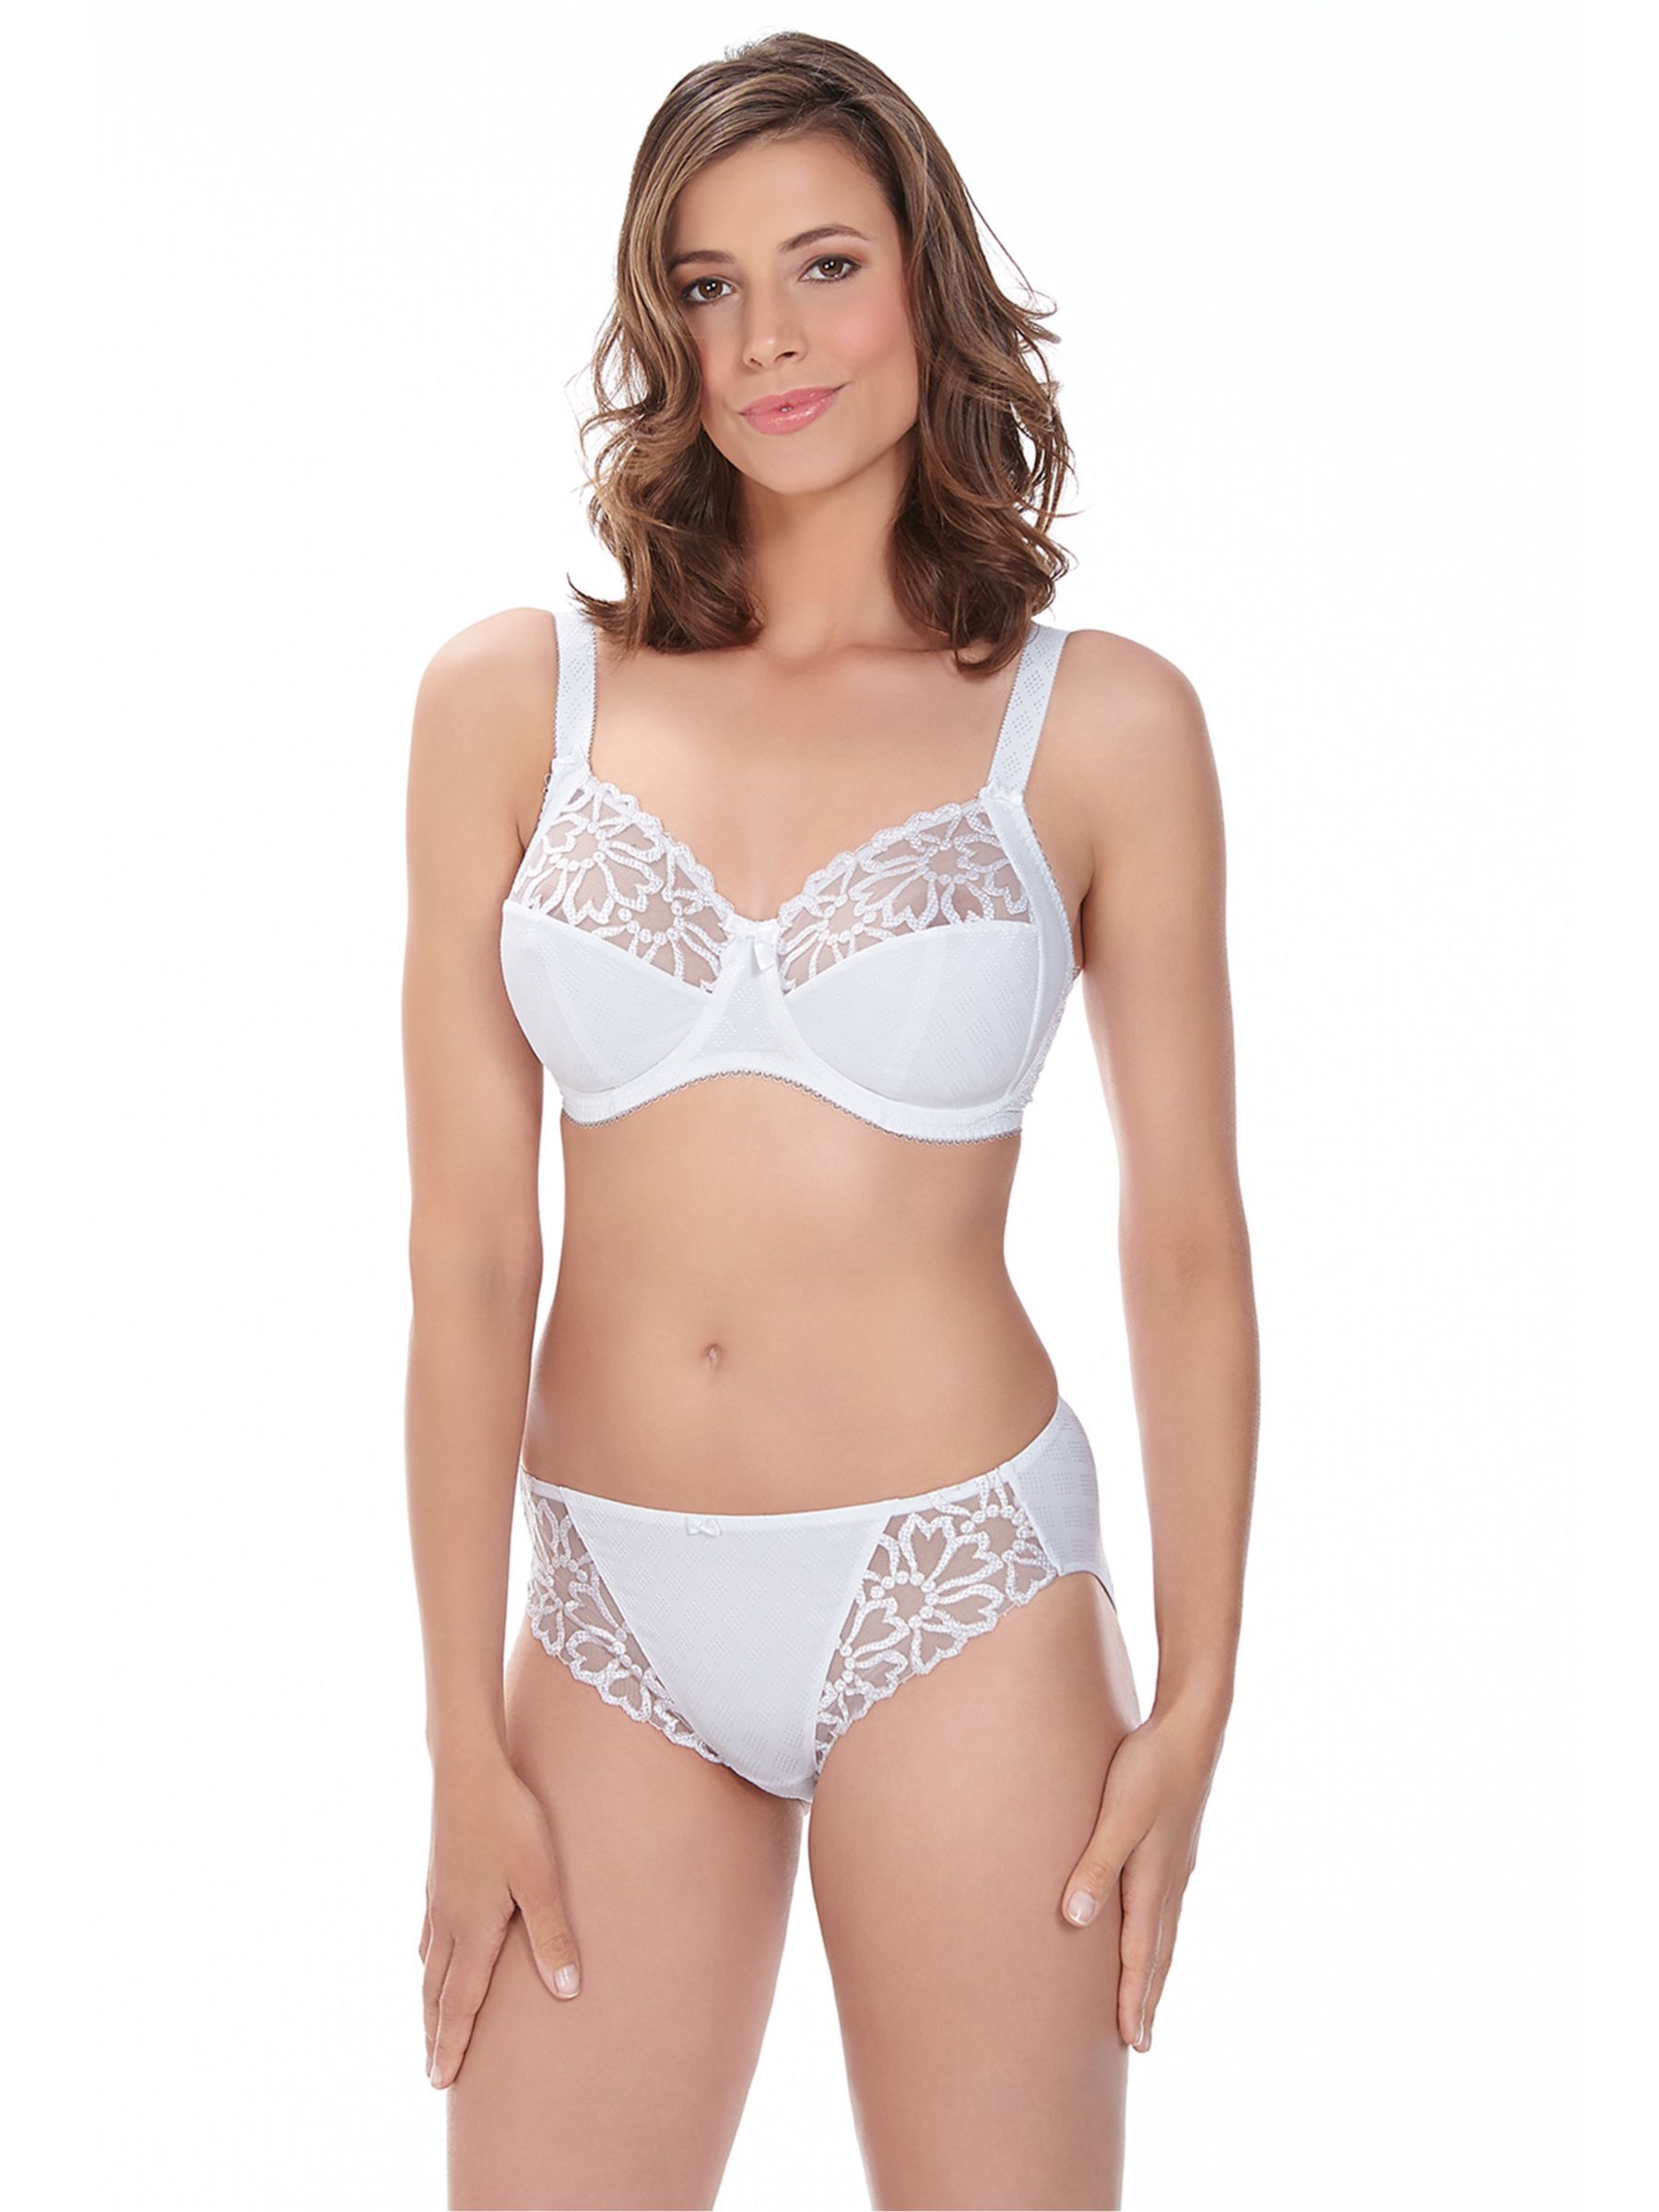 Fantasie Jacqueline   Full Cup side support Bra   Uplifted